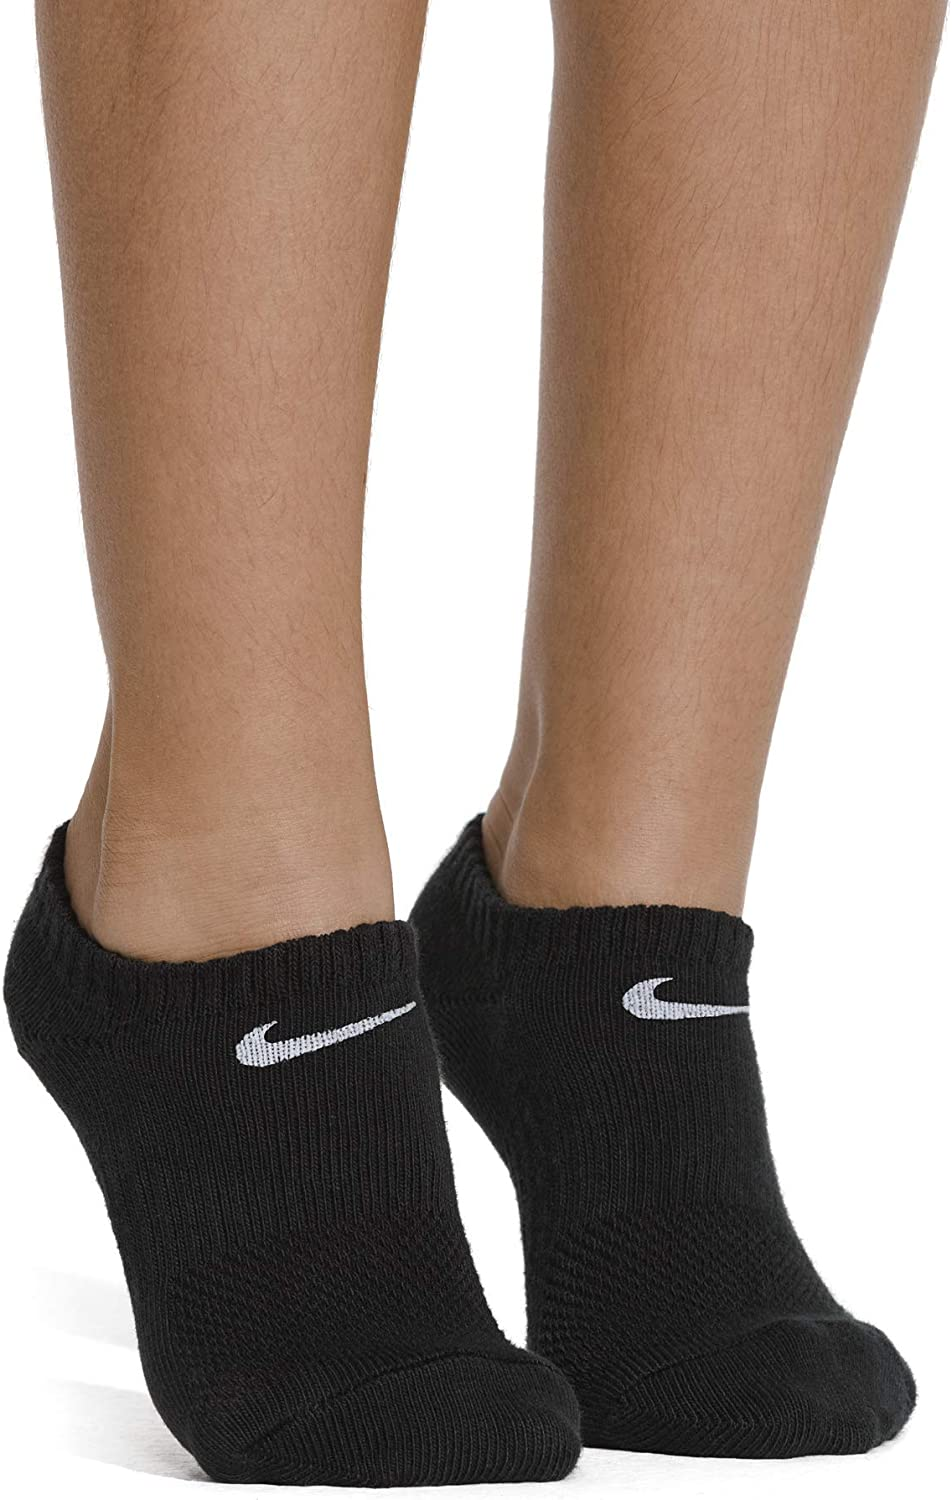 Nike Childrens Performance Lightweight No-show Socks